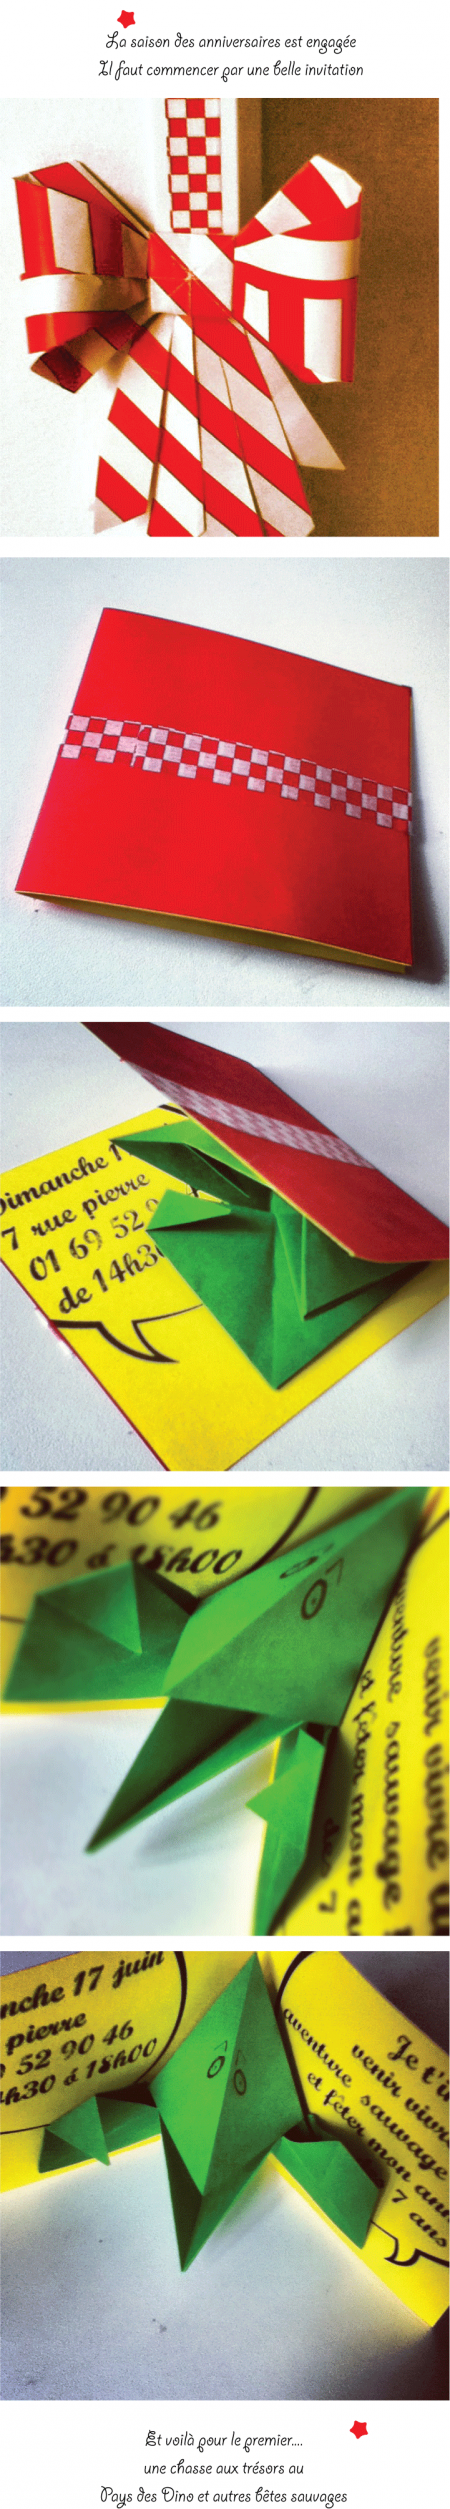 carte, invitation, anniversaire, origami, pinpointing